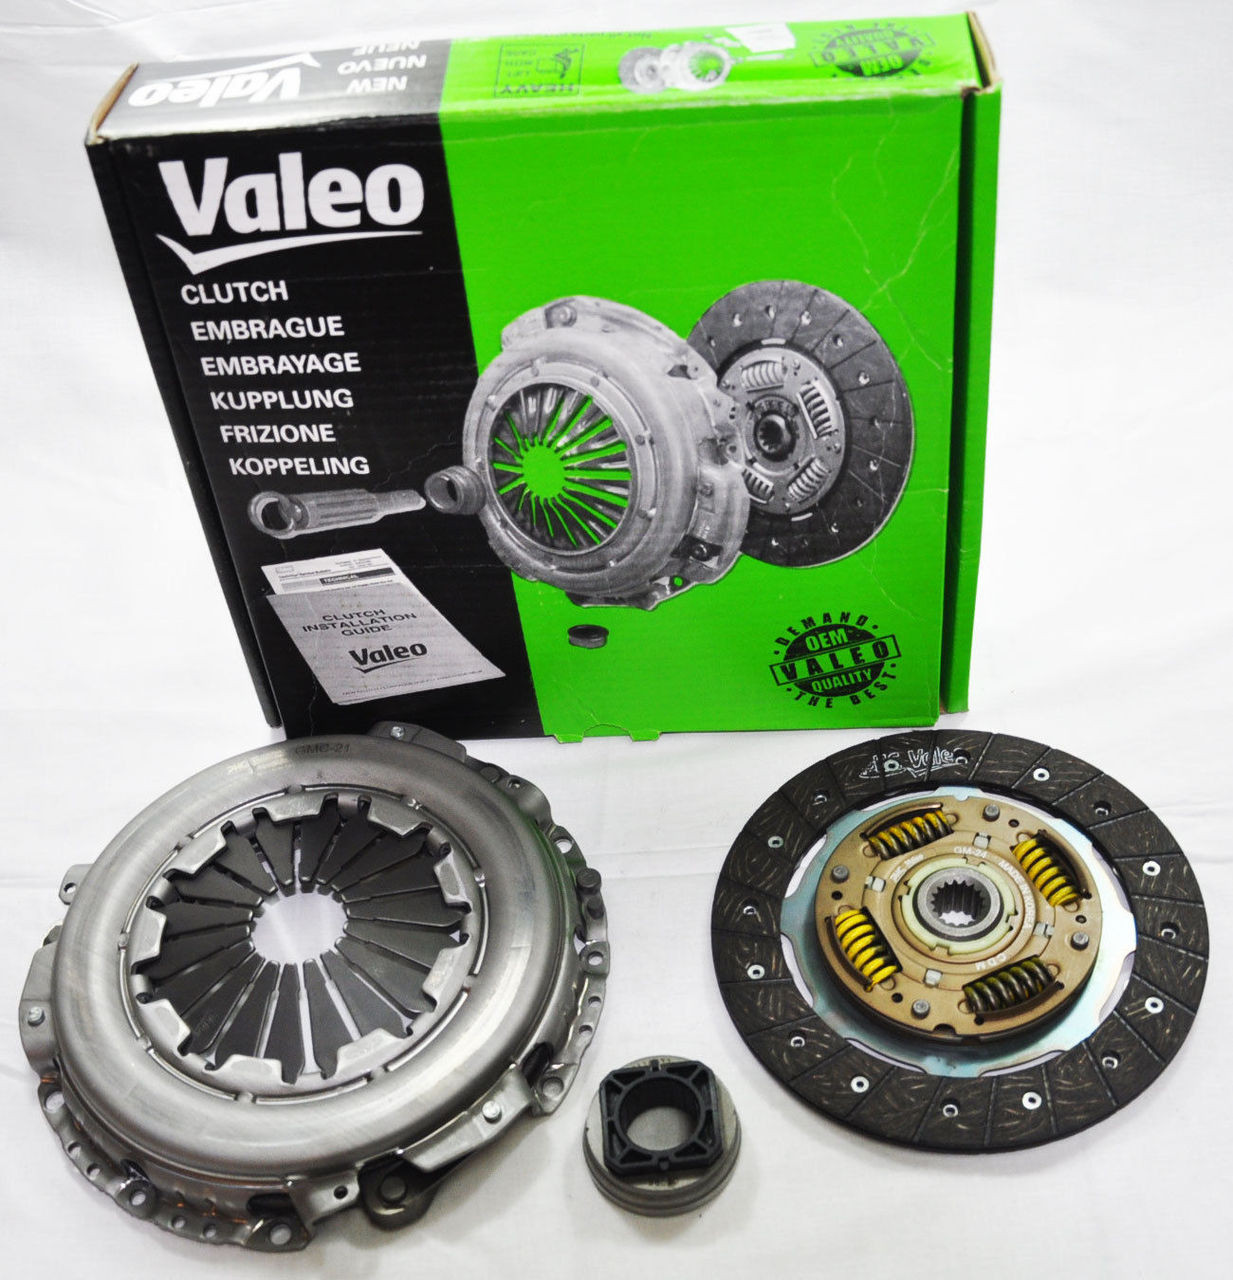 valeo business model